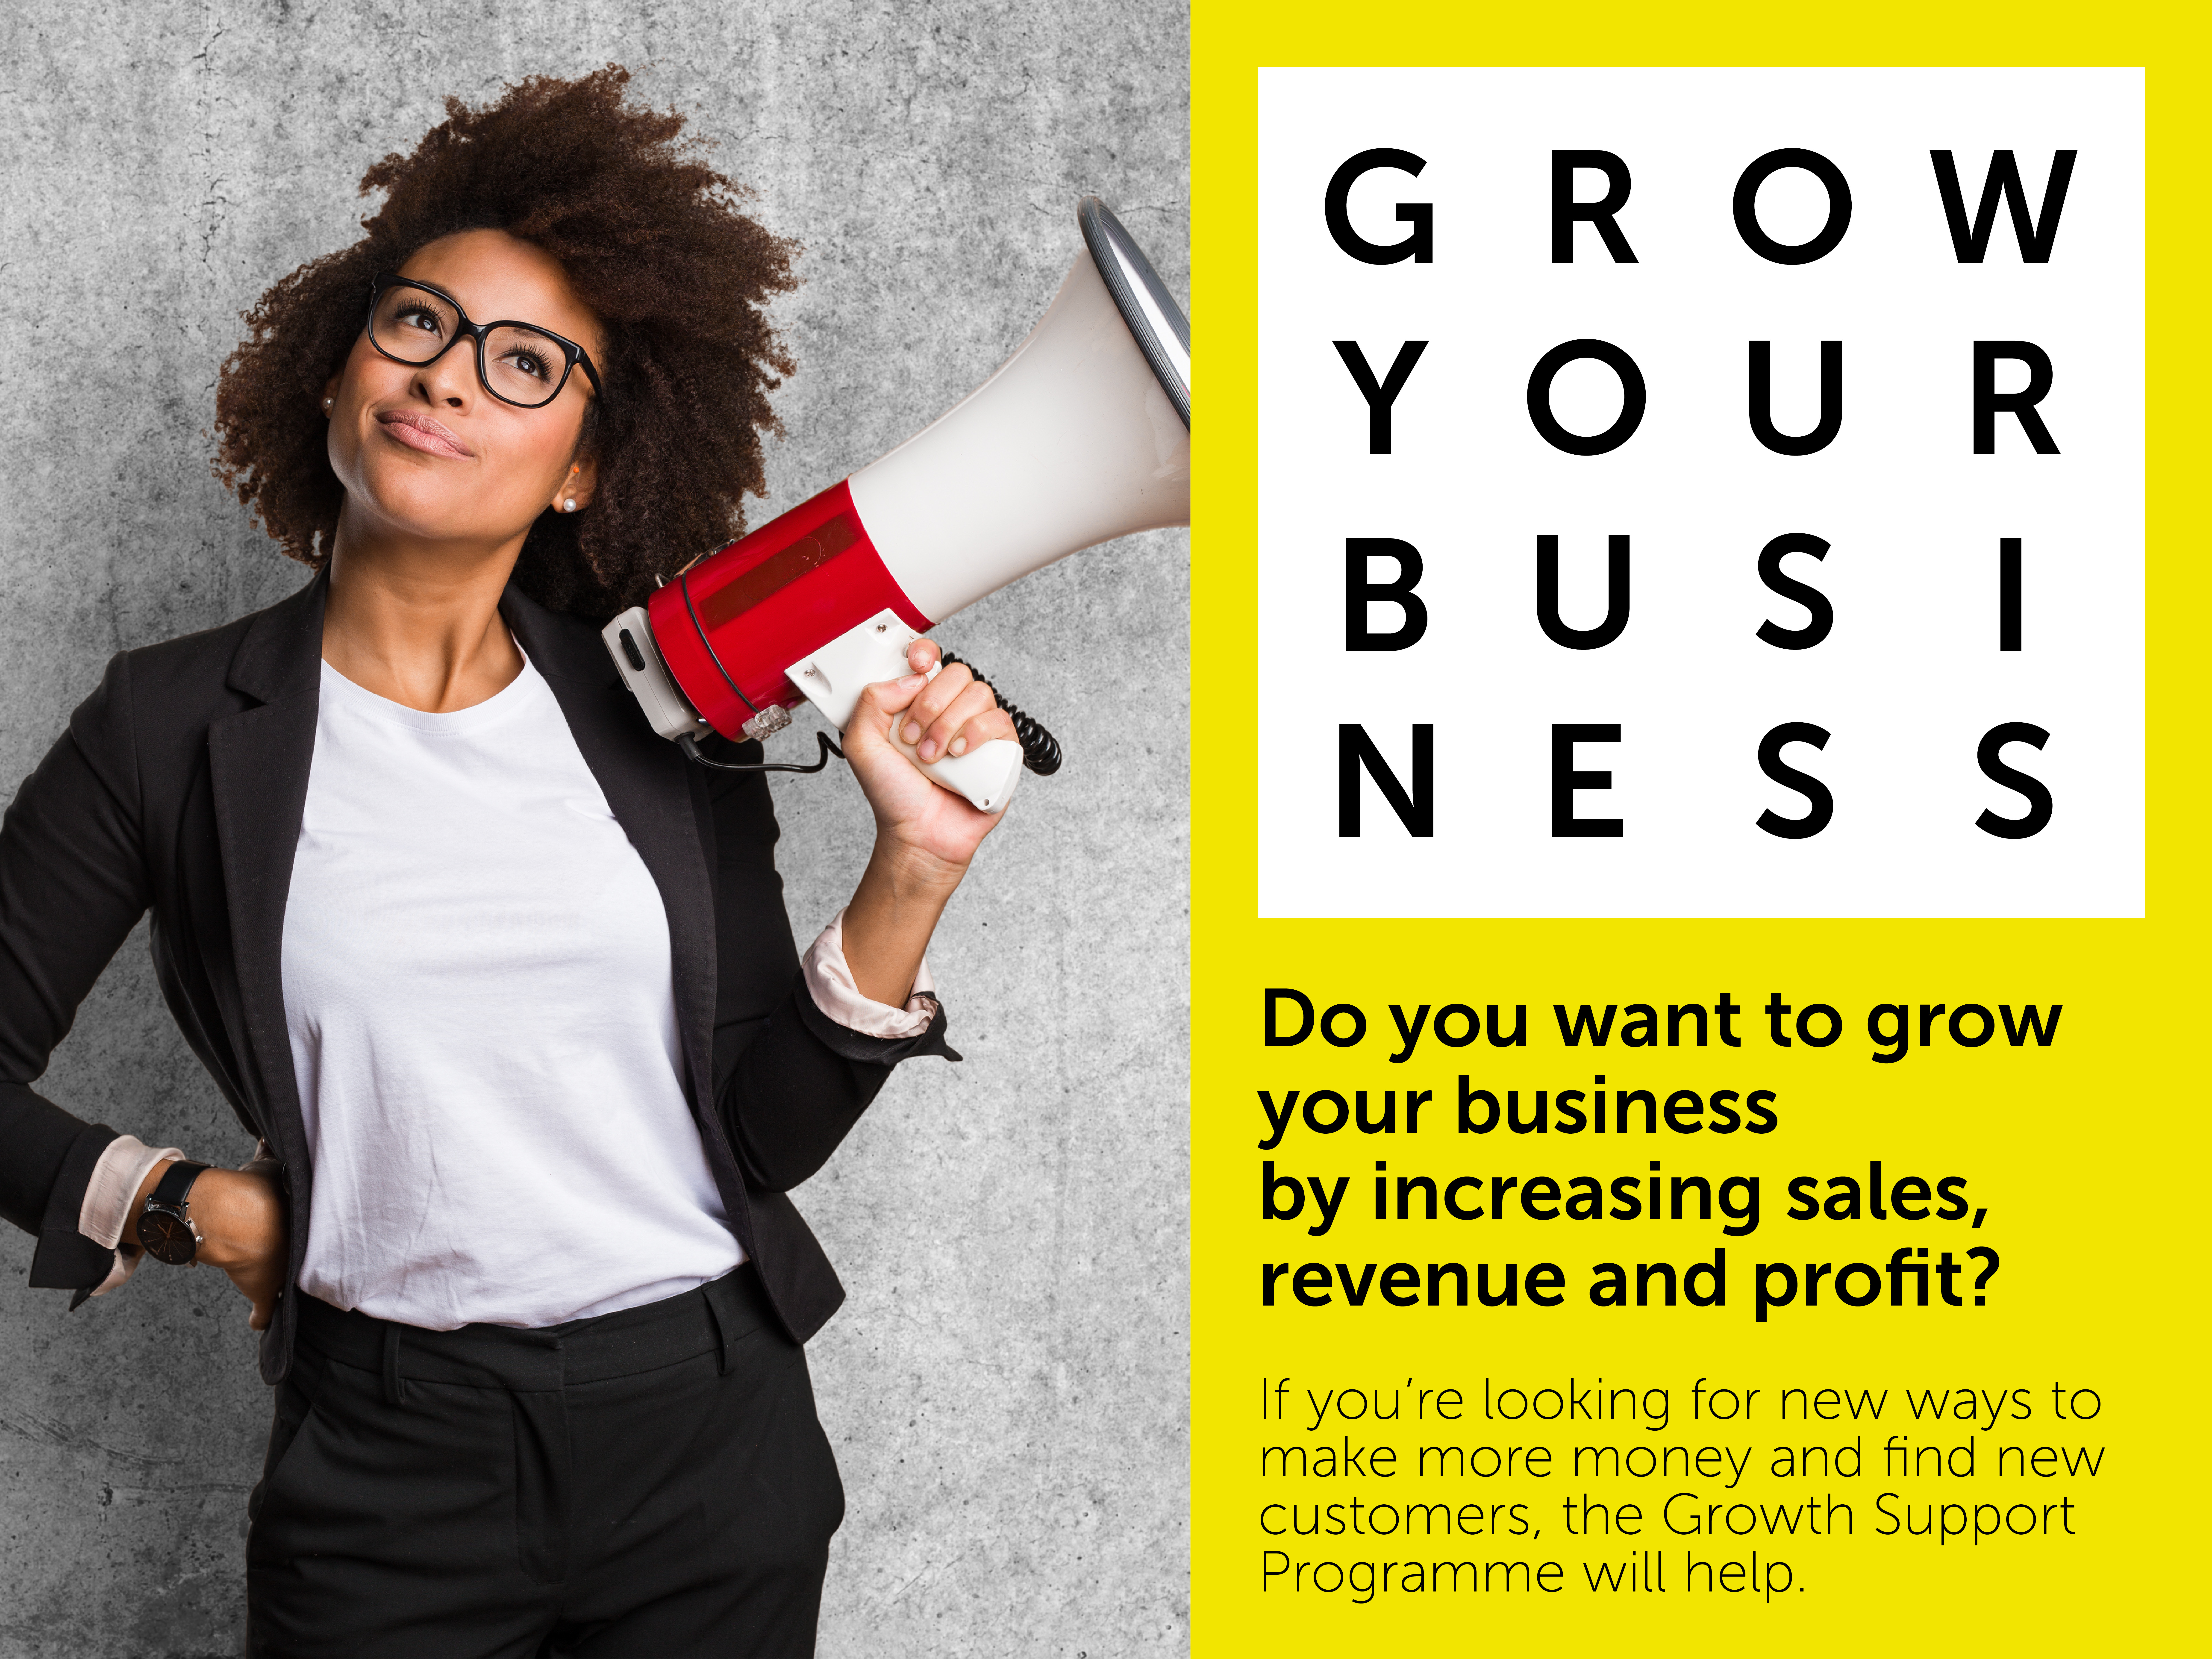 Growth Support Programme